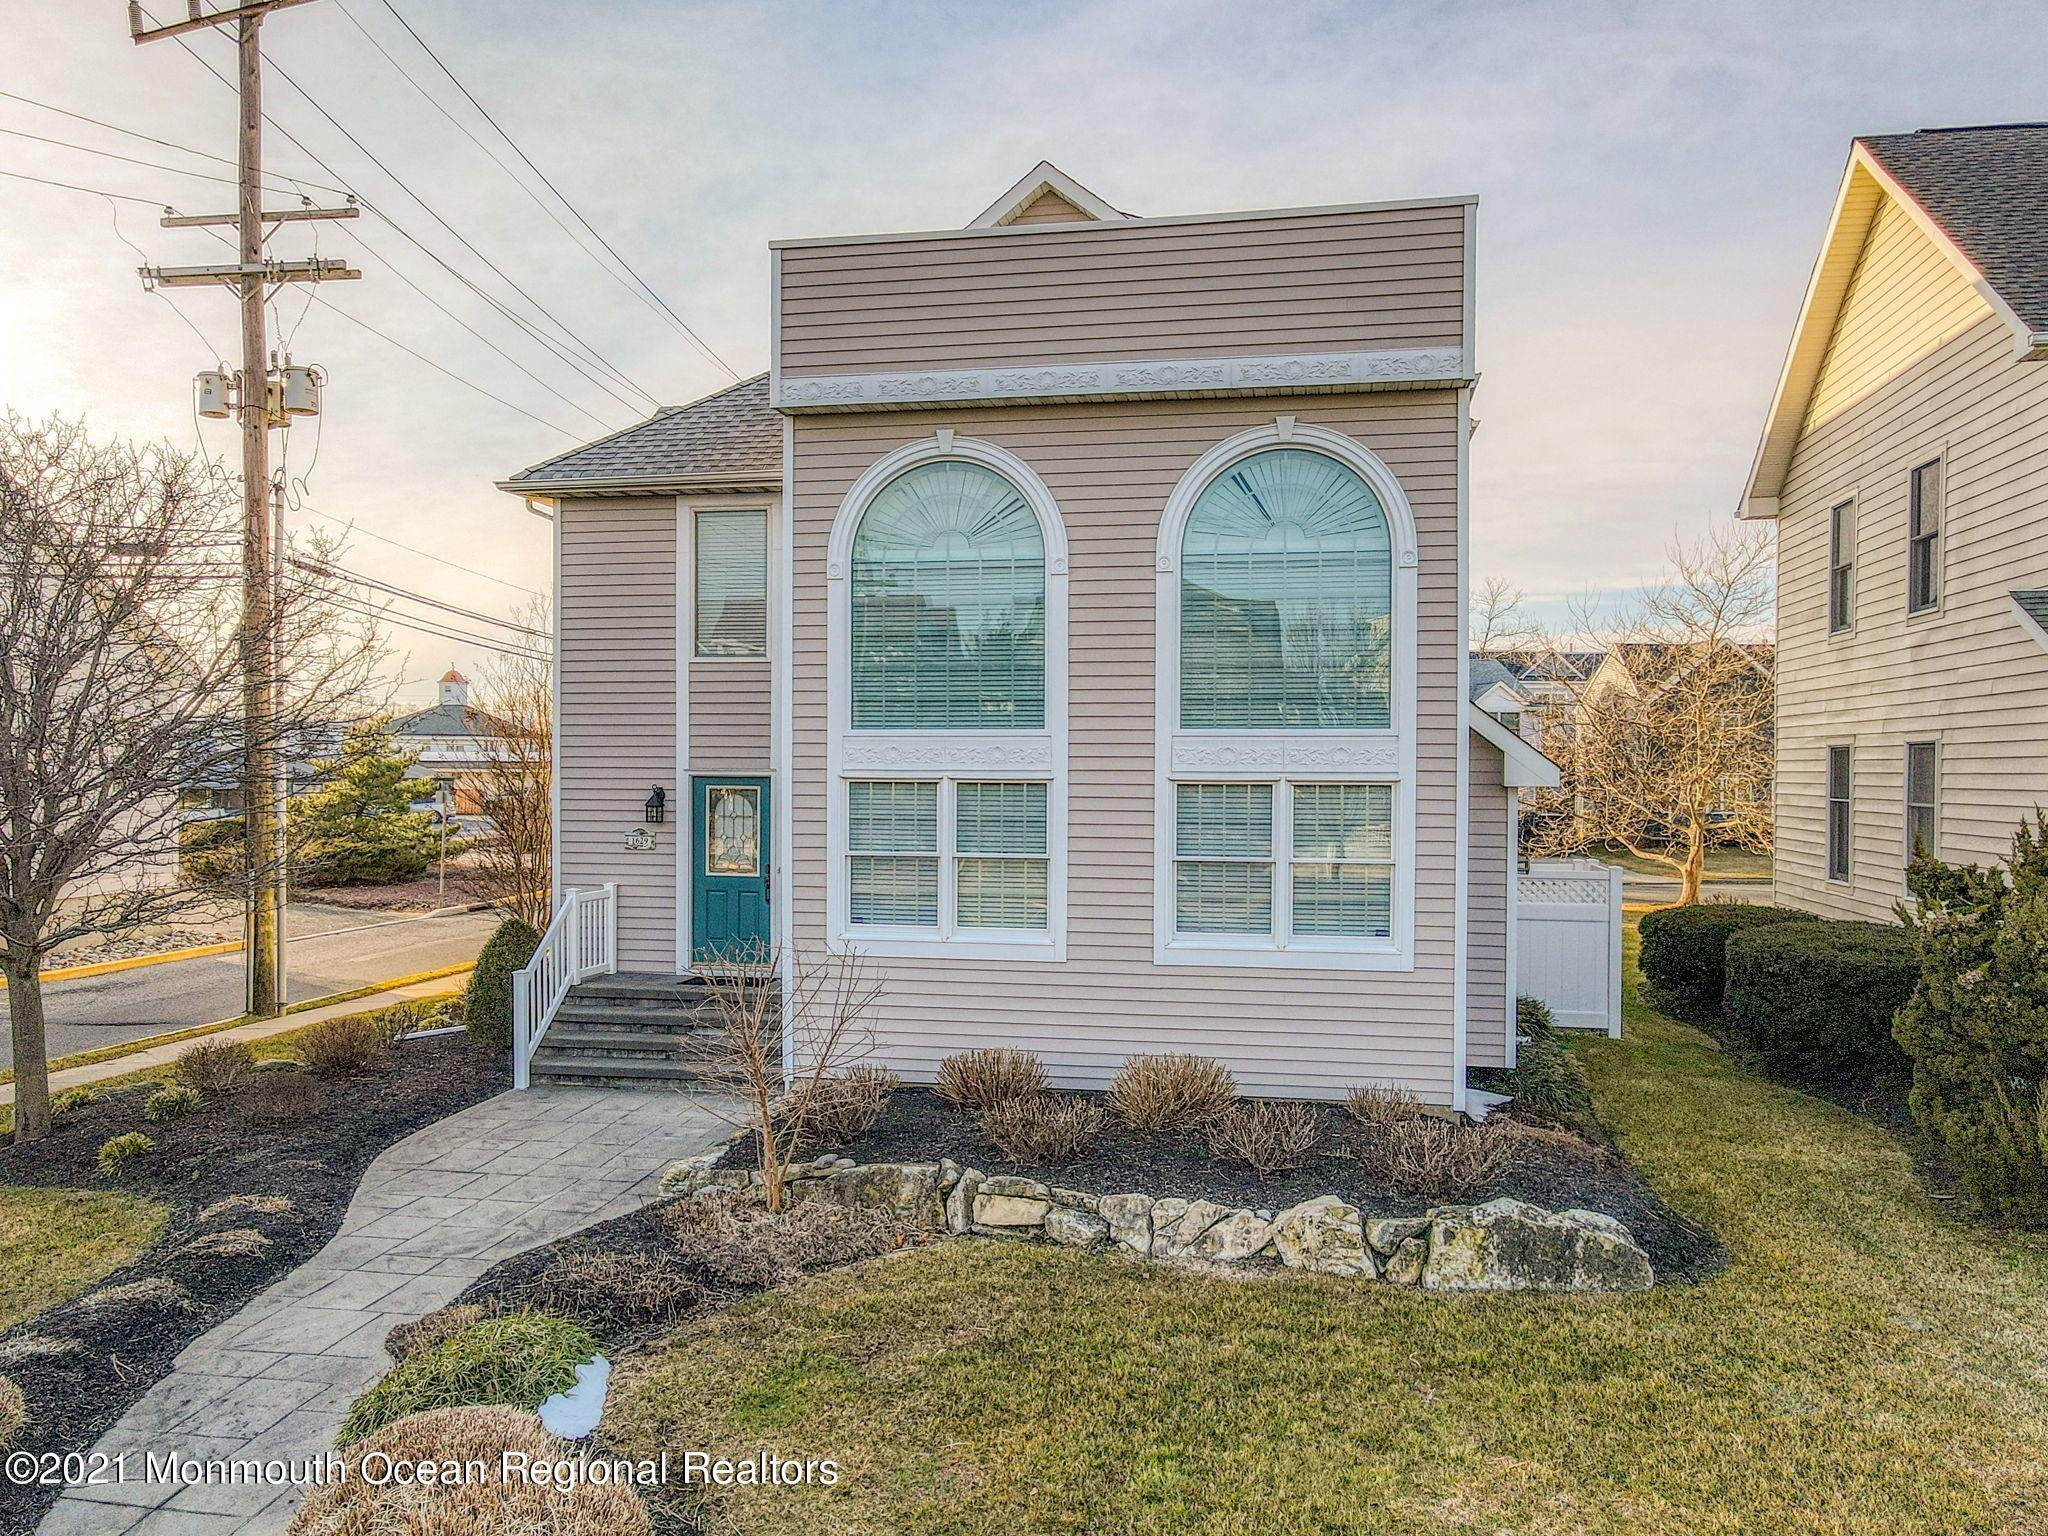 Property for Sale at 1629 Ocean Avenue Point Pleasant Beach, New Jersey 08742 United States